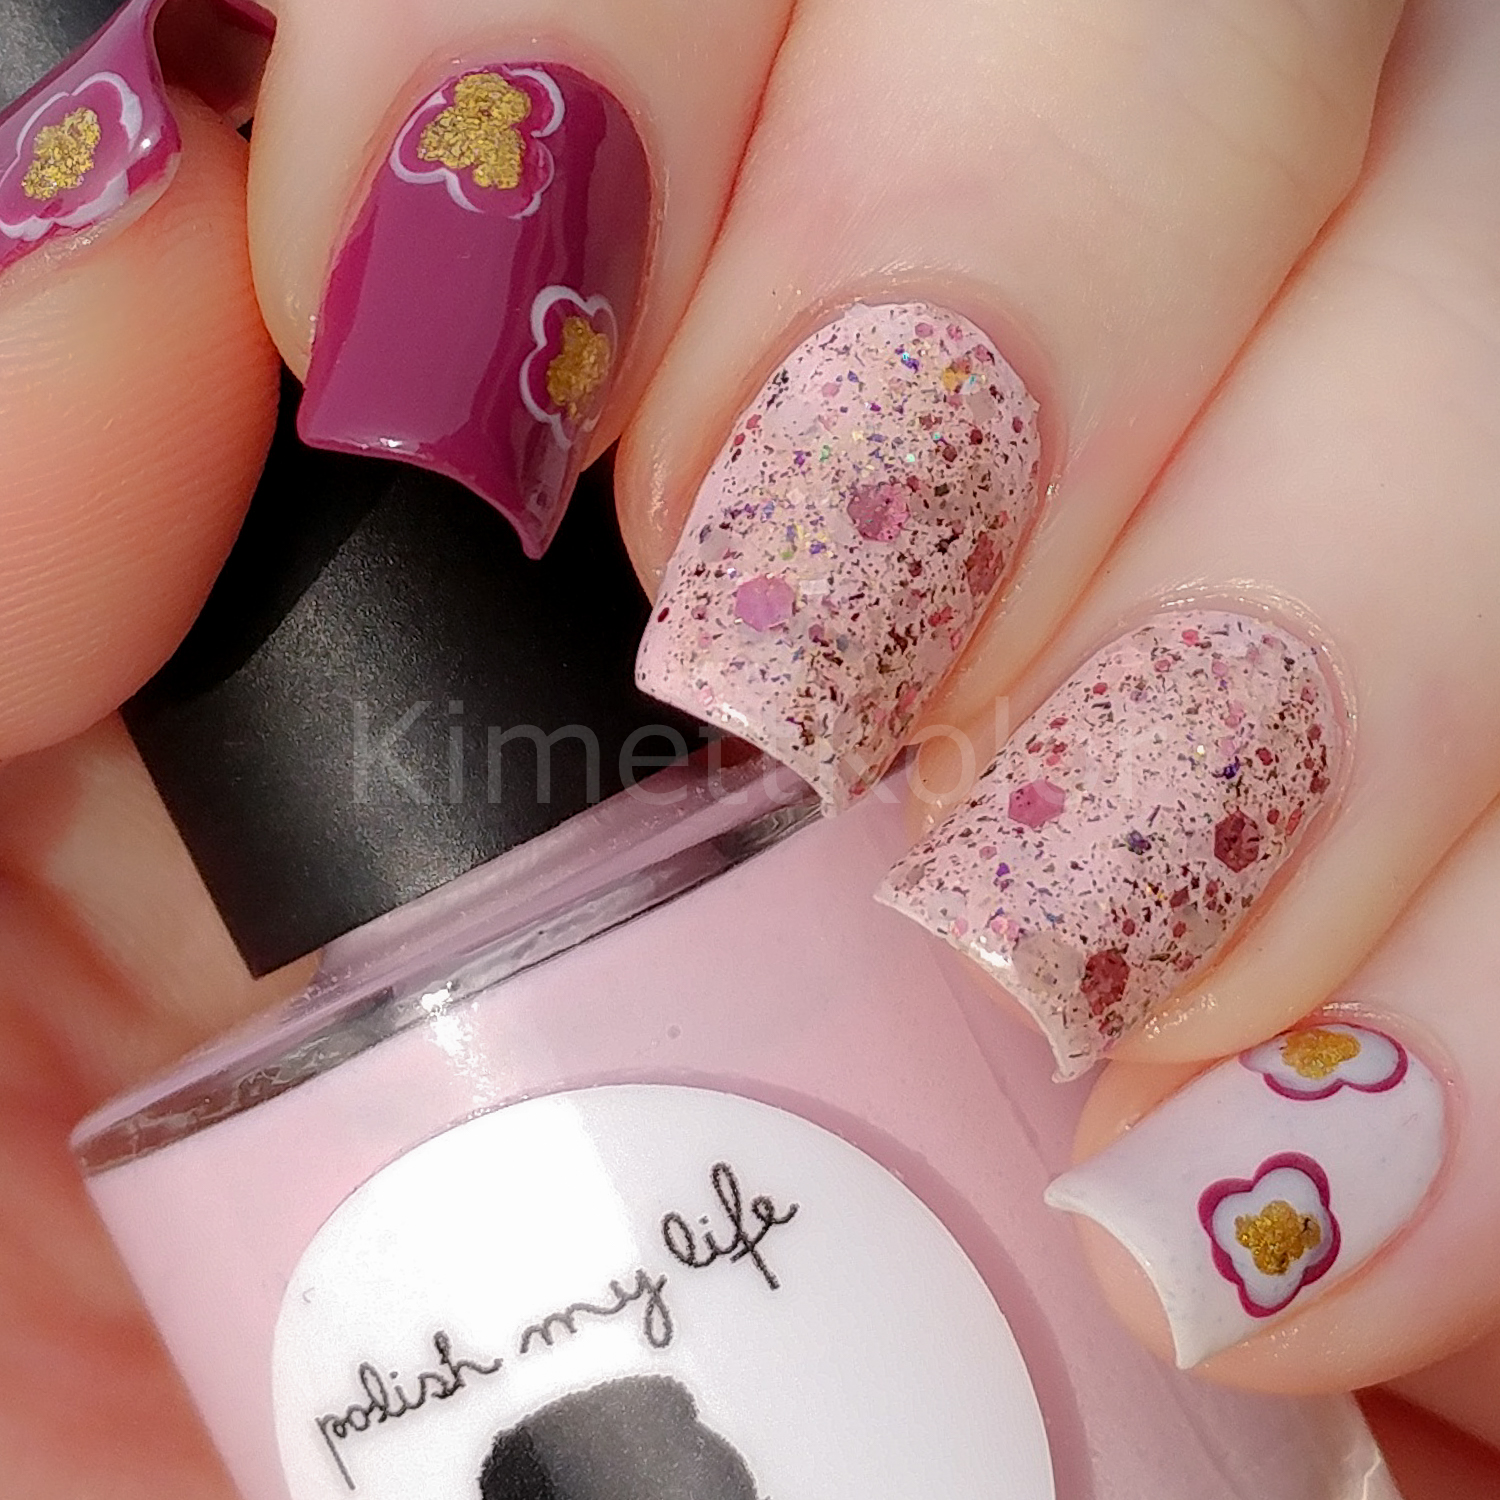 Kimett Kolor Nail Art Abstract Floral Spring Glitter